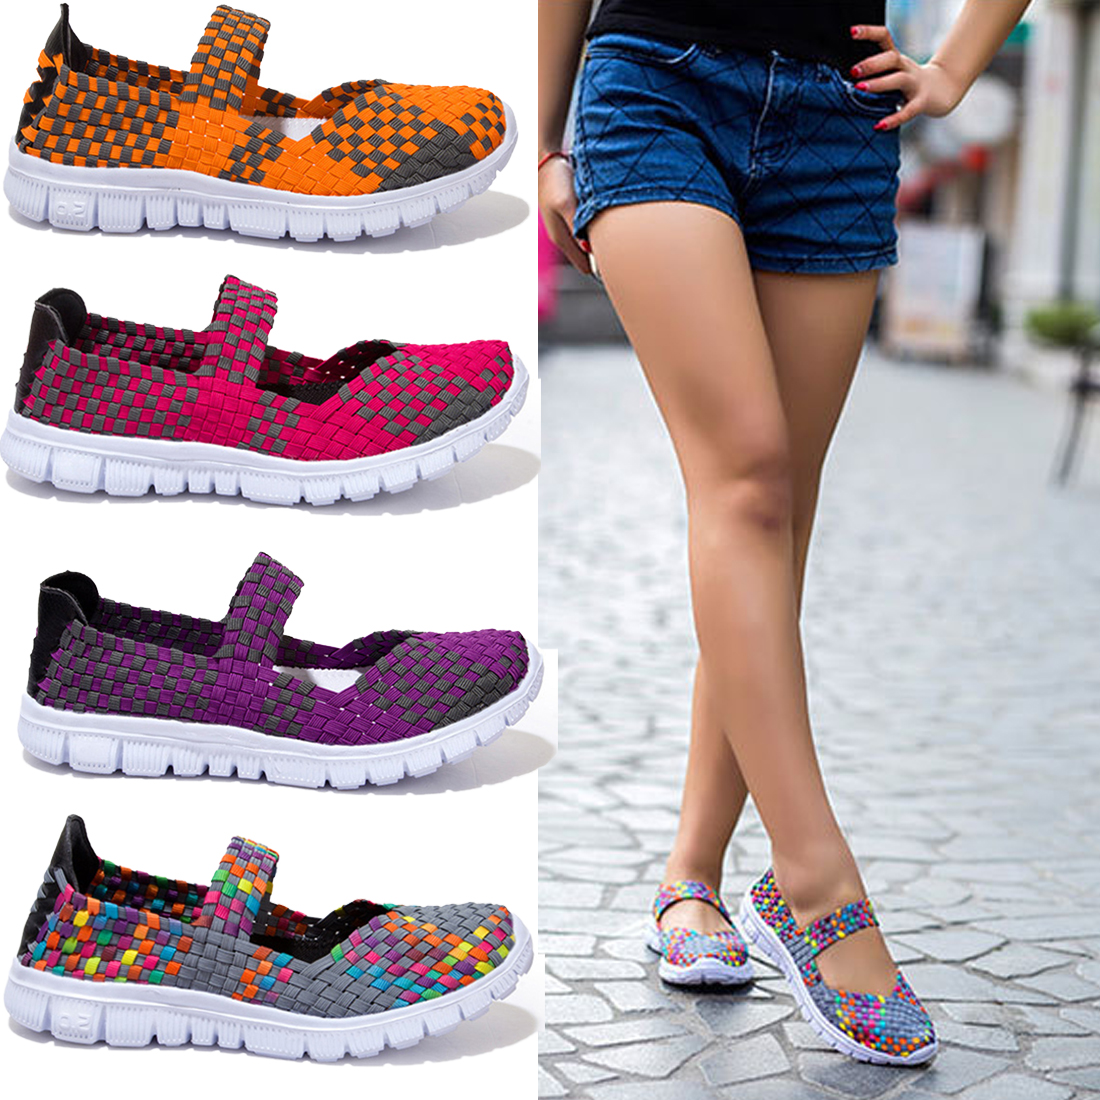 2017 spring breathable women fashion flats Shoes light flat loafer shoes Cheap Walking flats weave shoes for women <br><br>Aliexpress